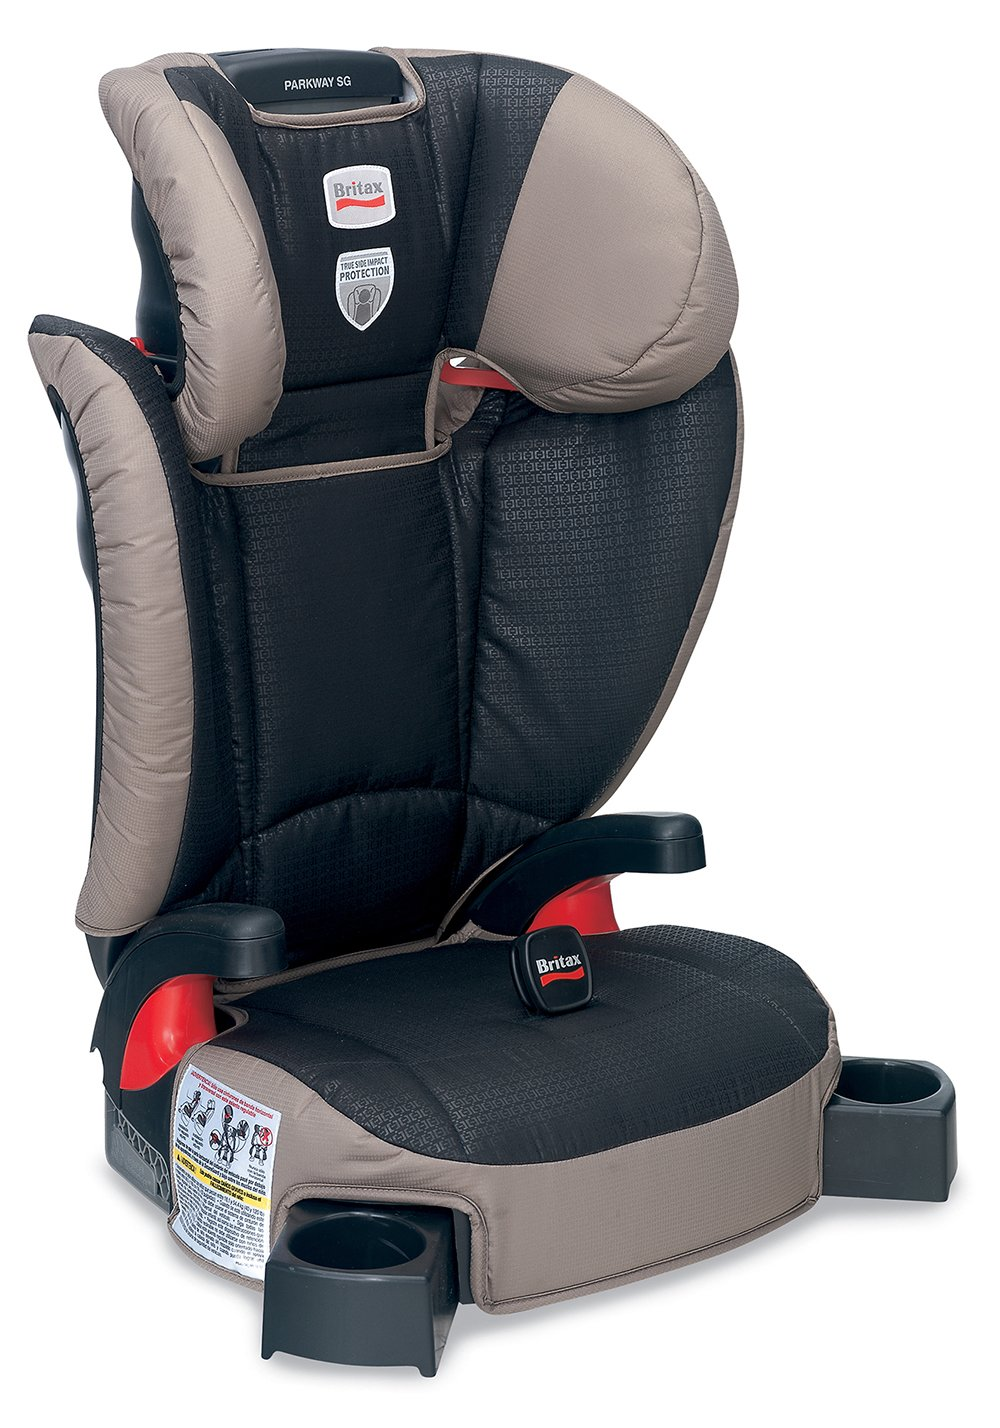 Amazon.com : Britax Parkway SG Belt-Positioning Booster Seat, Knight ...